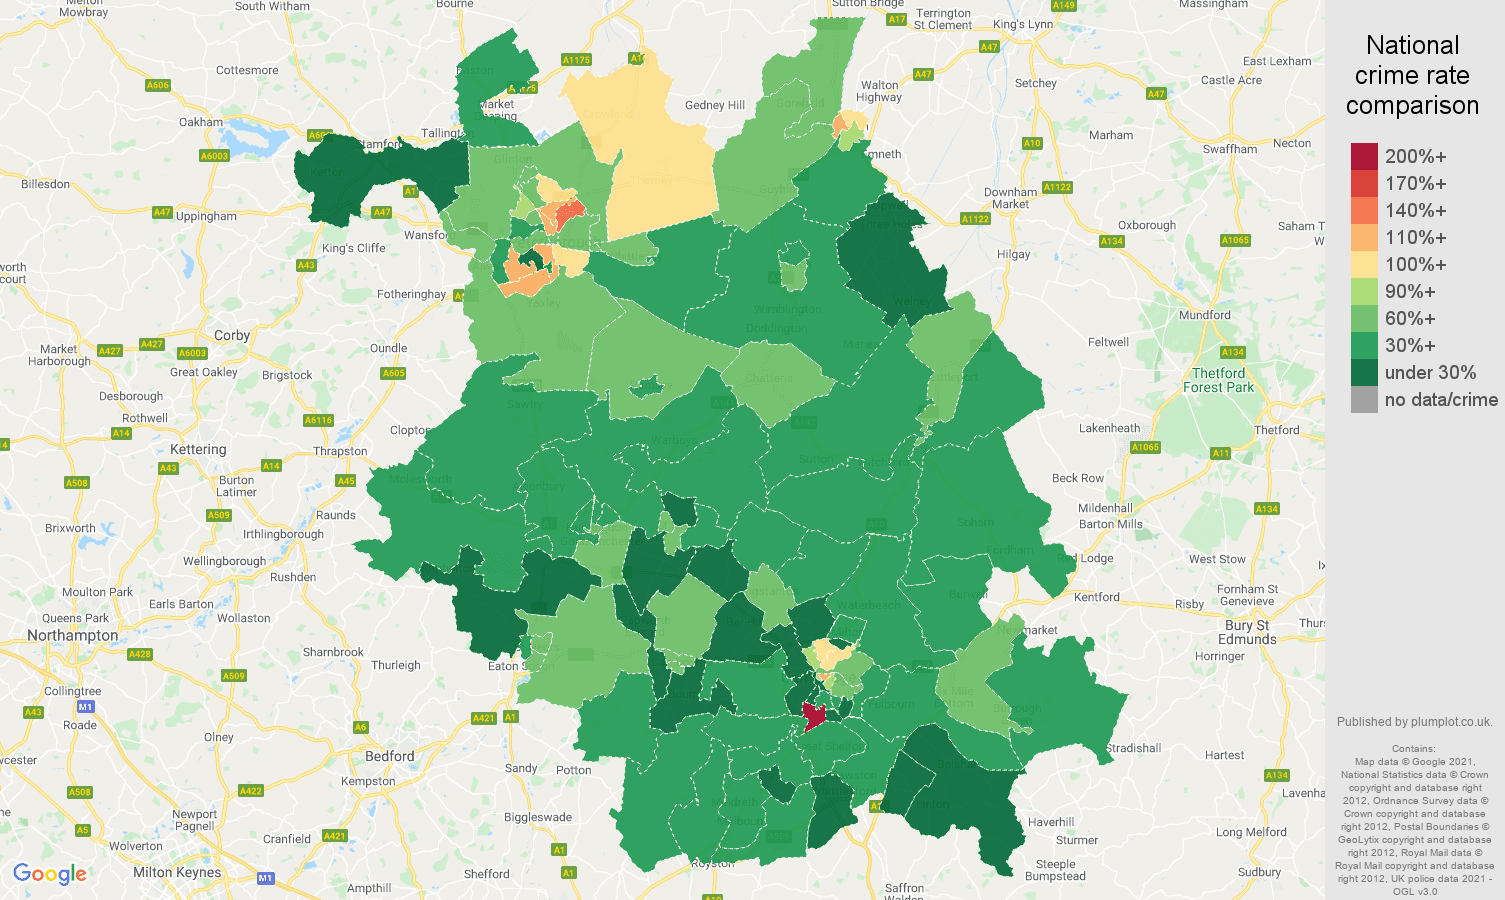 Cambridgeshire antisocial behaviour crime rate comparison map